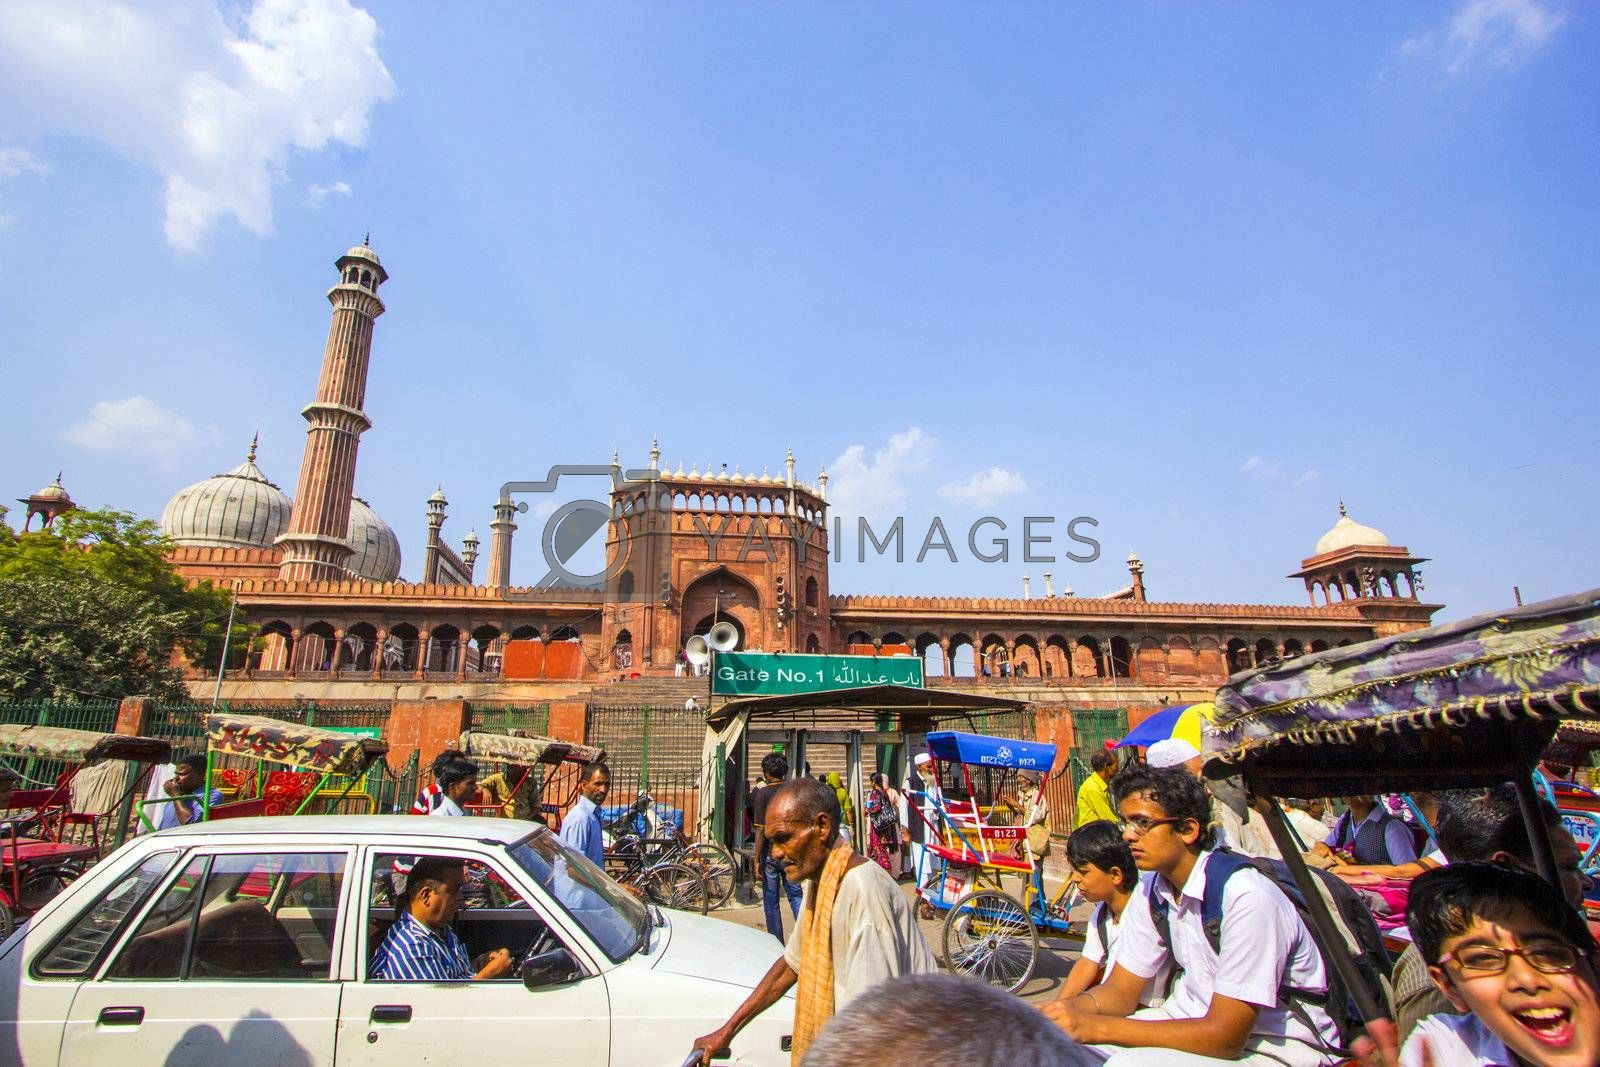 DELHI, INDIA - OCTOBER 15: people enter the Jama Masjid throug gate No 1 on October 15, 2012 in Delhi, India. The mosque is surrounded by markets and  trafic.